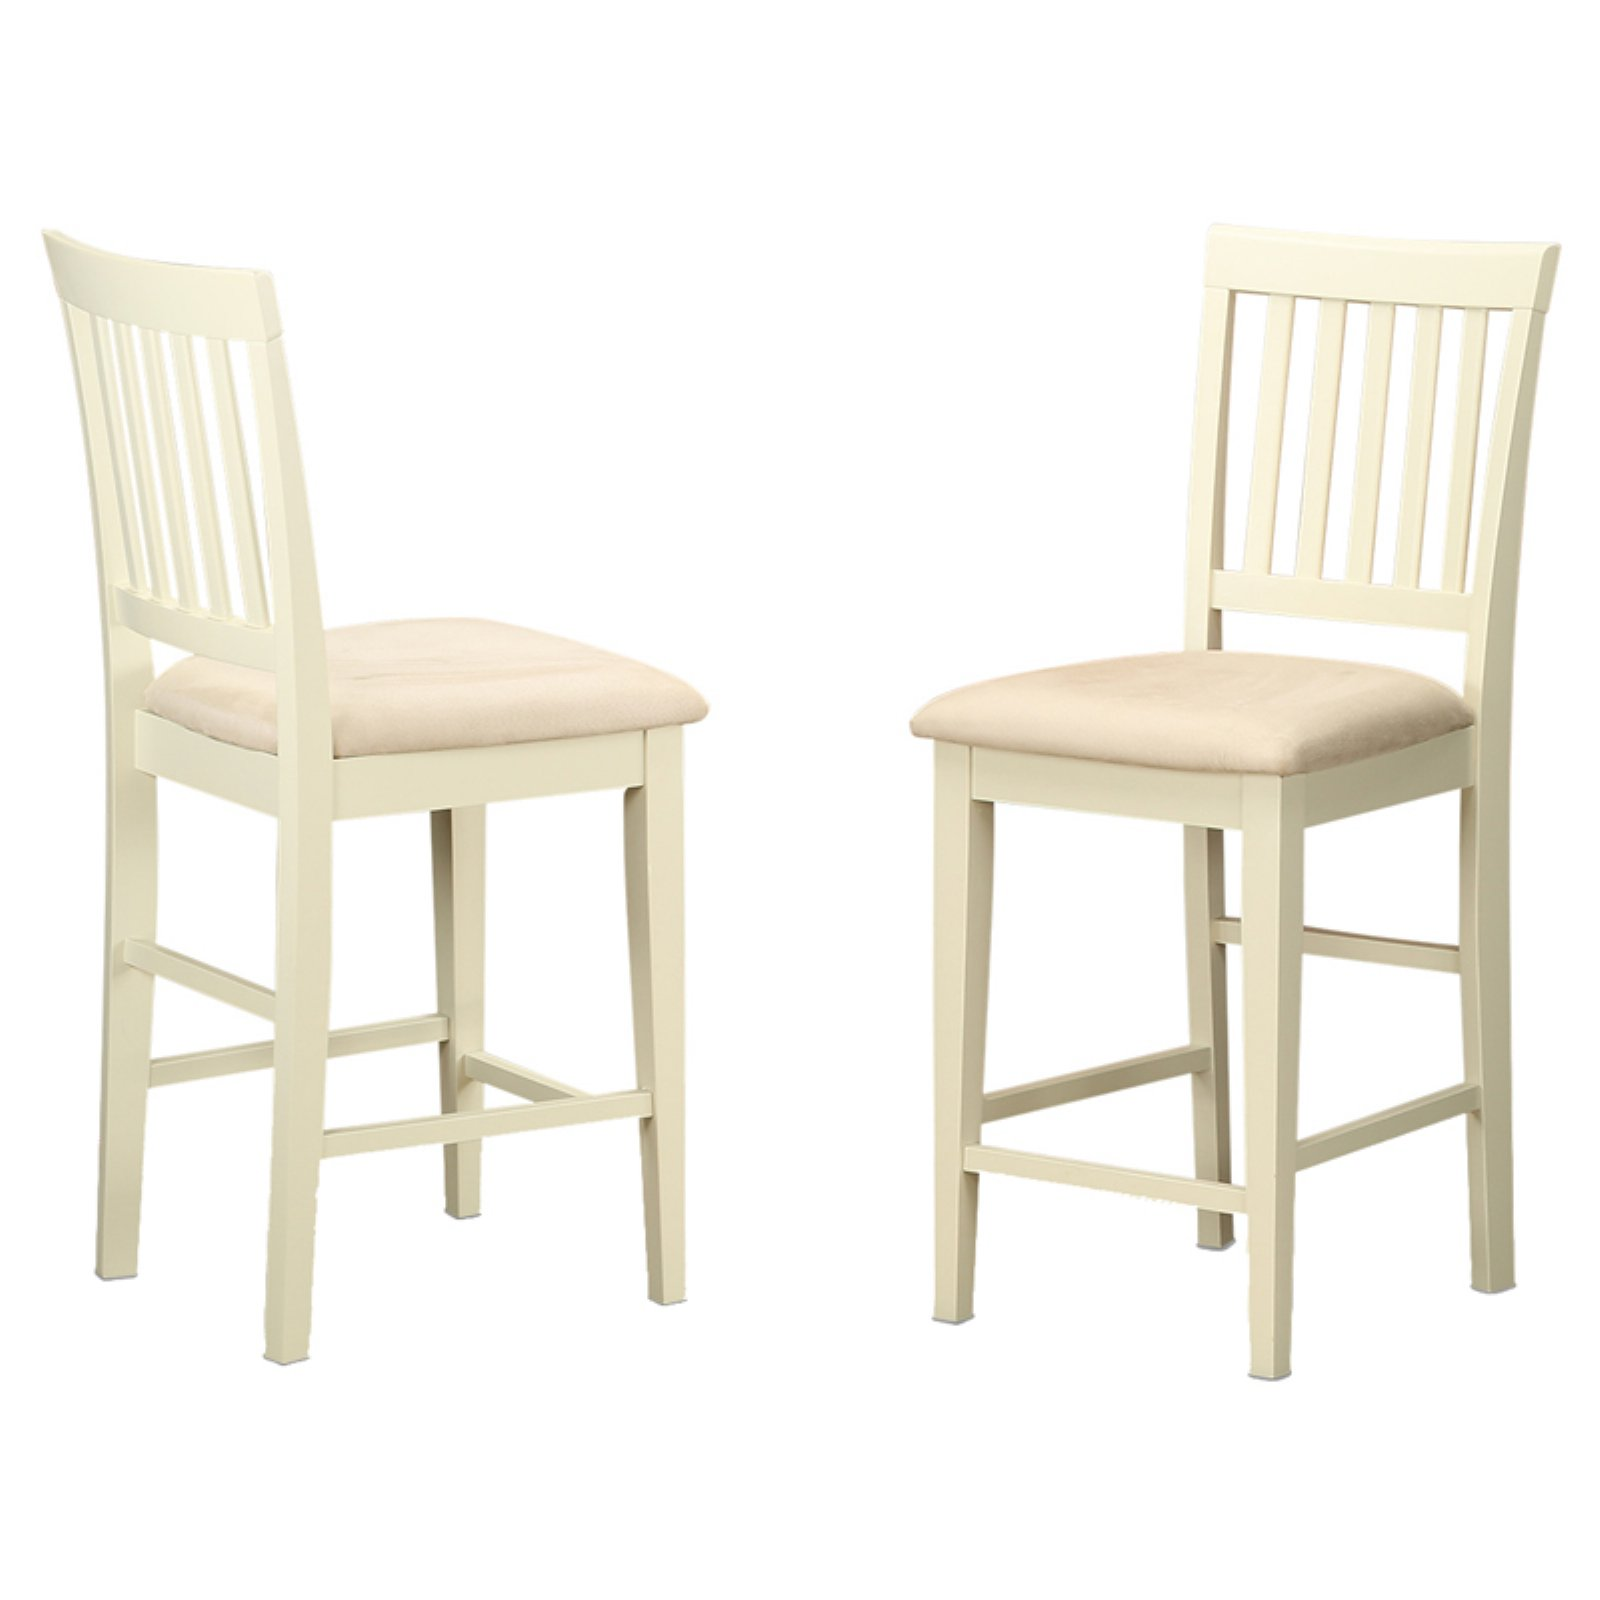 East West Furniture Vernon Counter Height Stool with Microfiber Seat - Set of 2